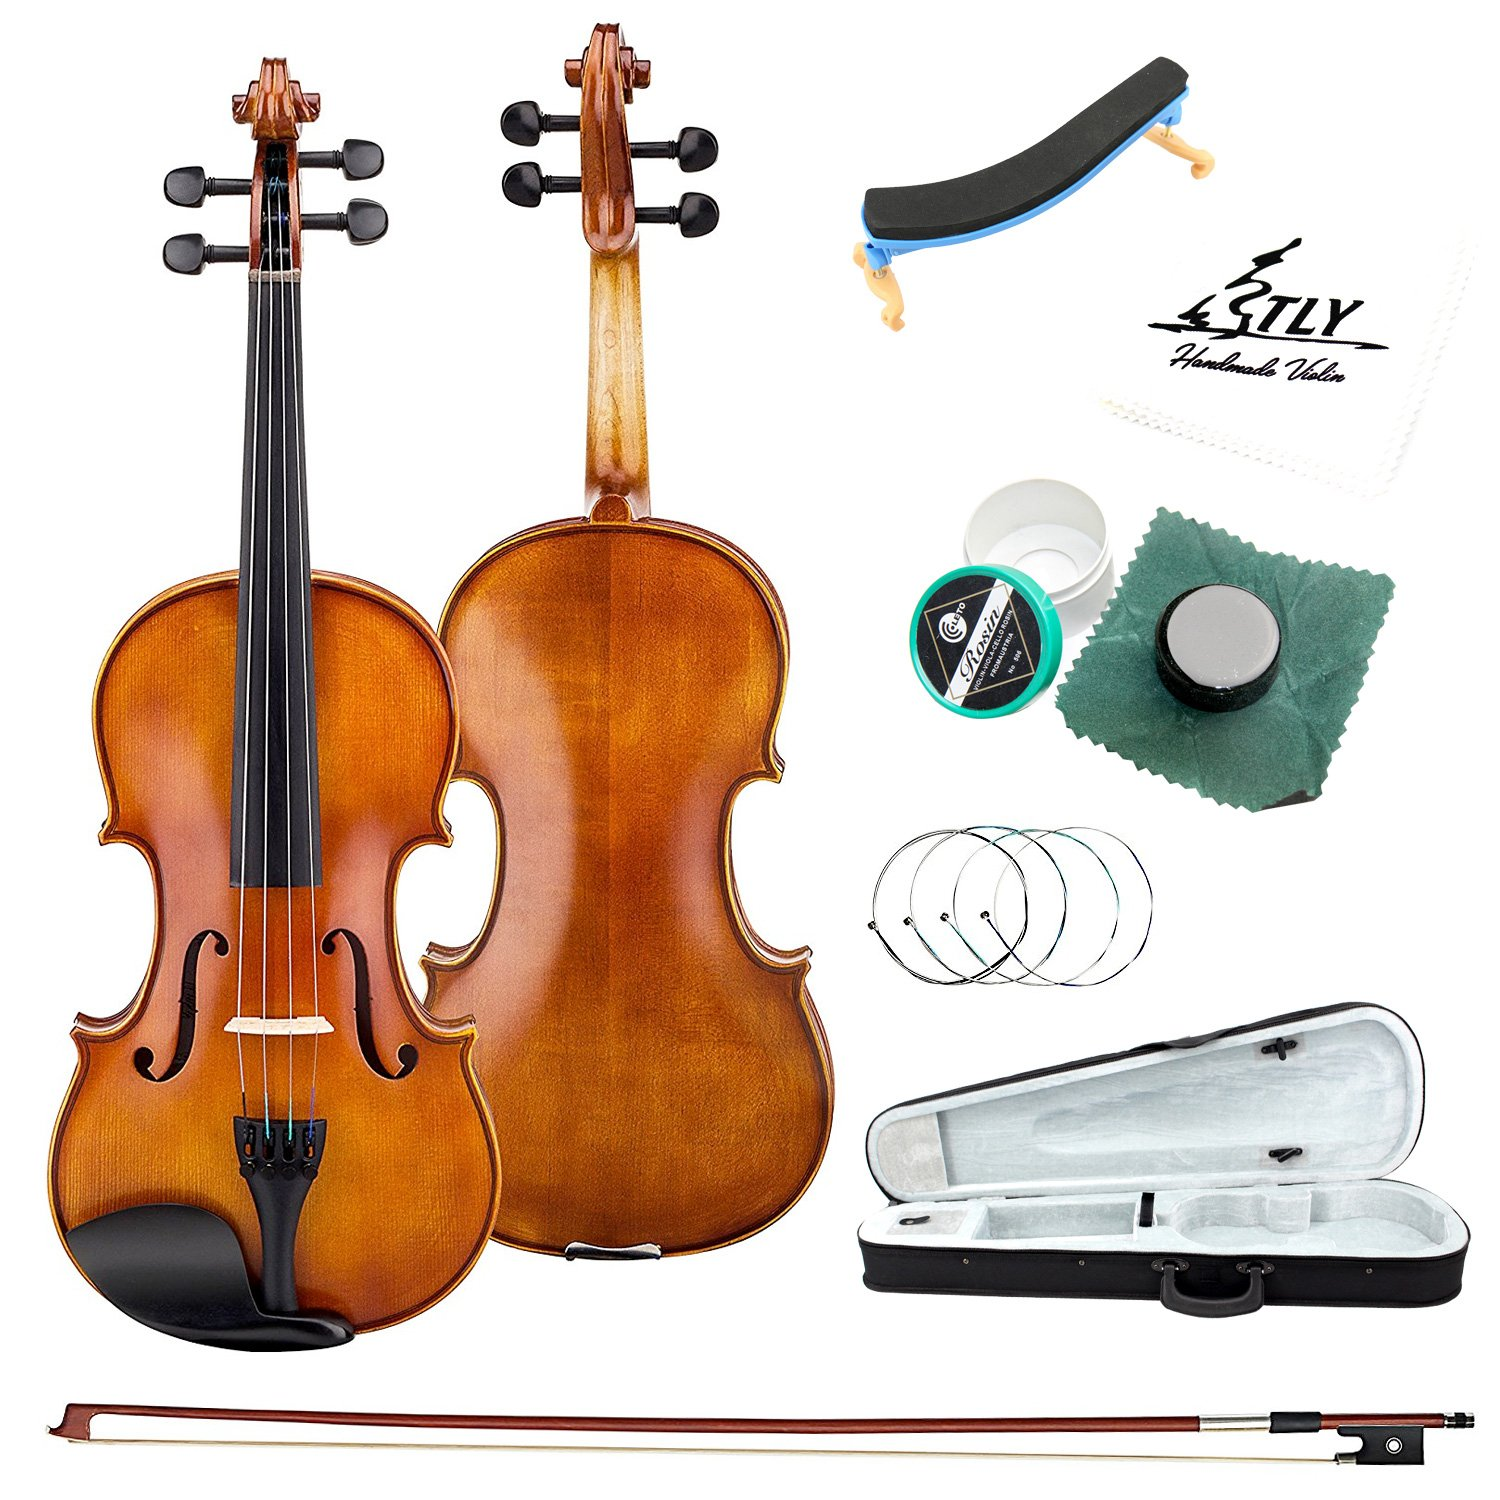 TLY Acoustic Professional Violin Handmade Wooden Outfit Beginner Pack for Student, Size 3/4